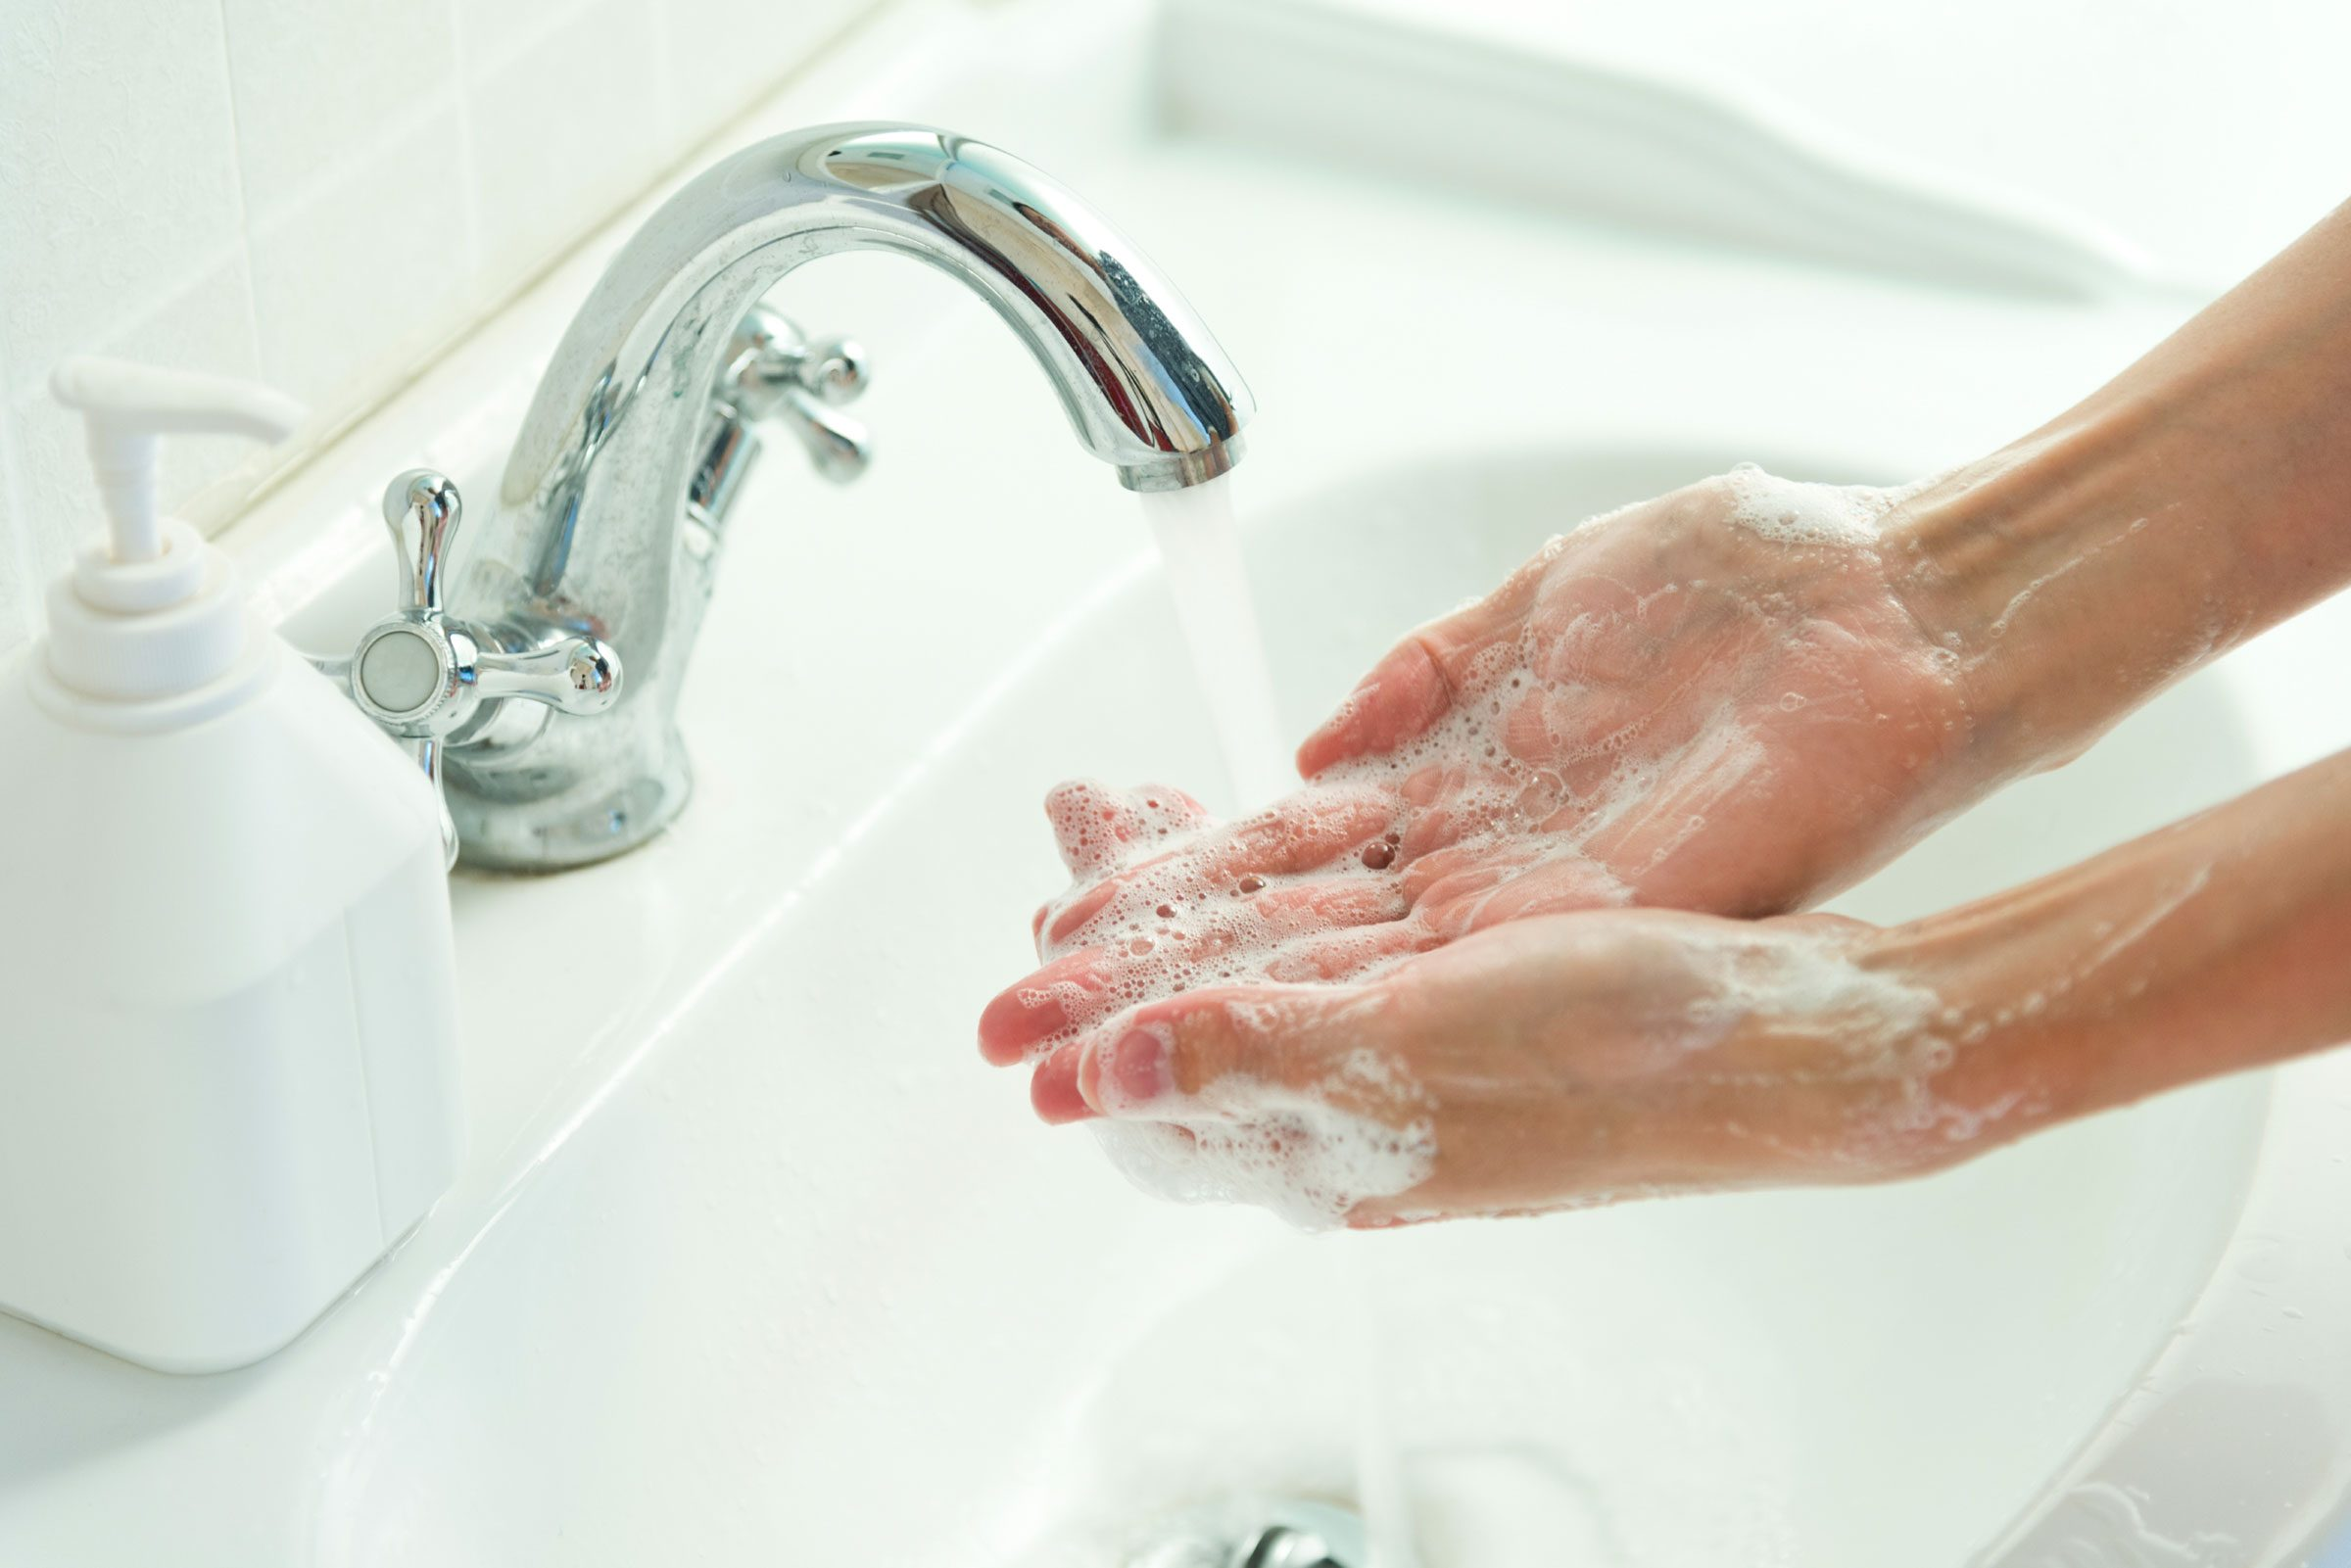 hand washing mistakes long enough